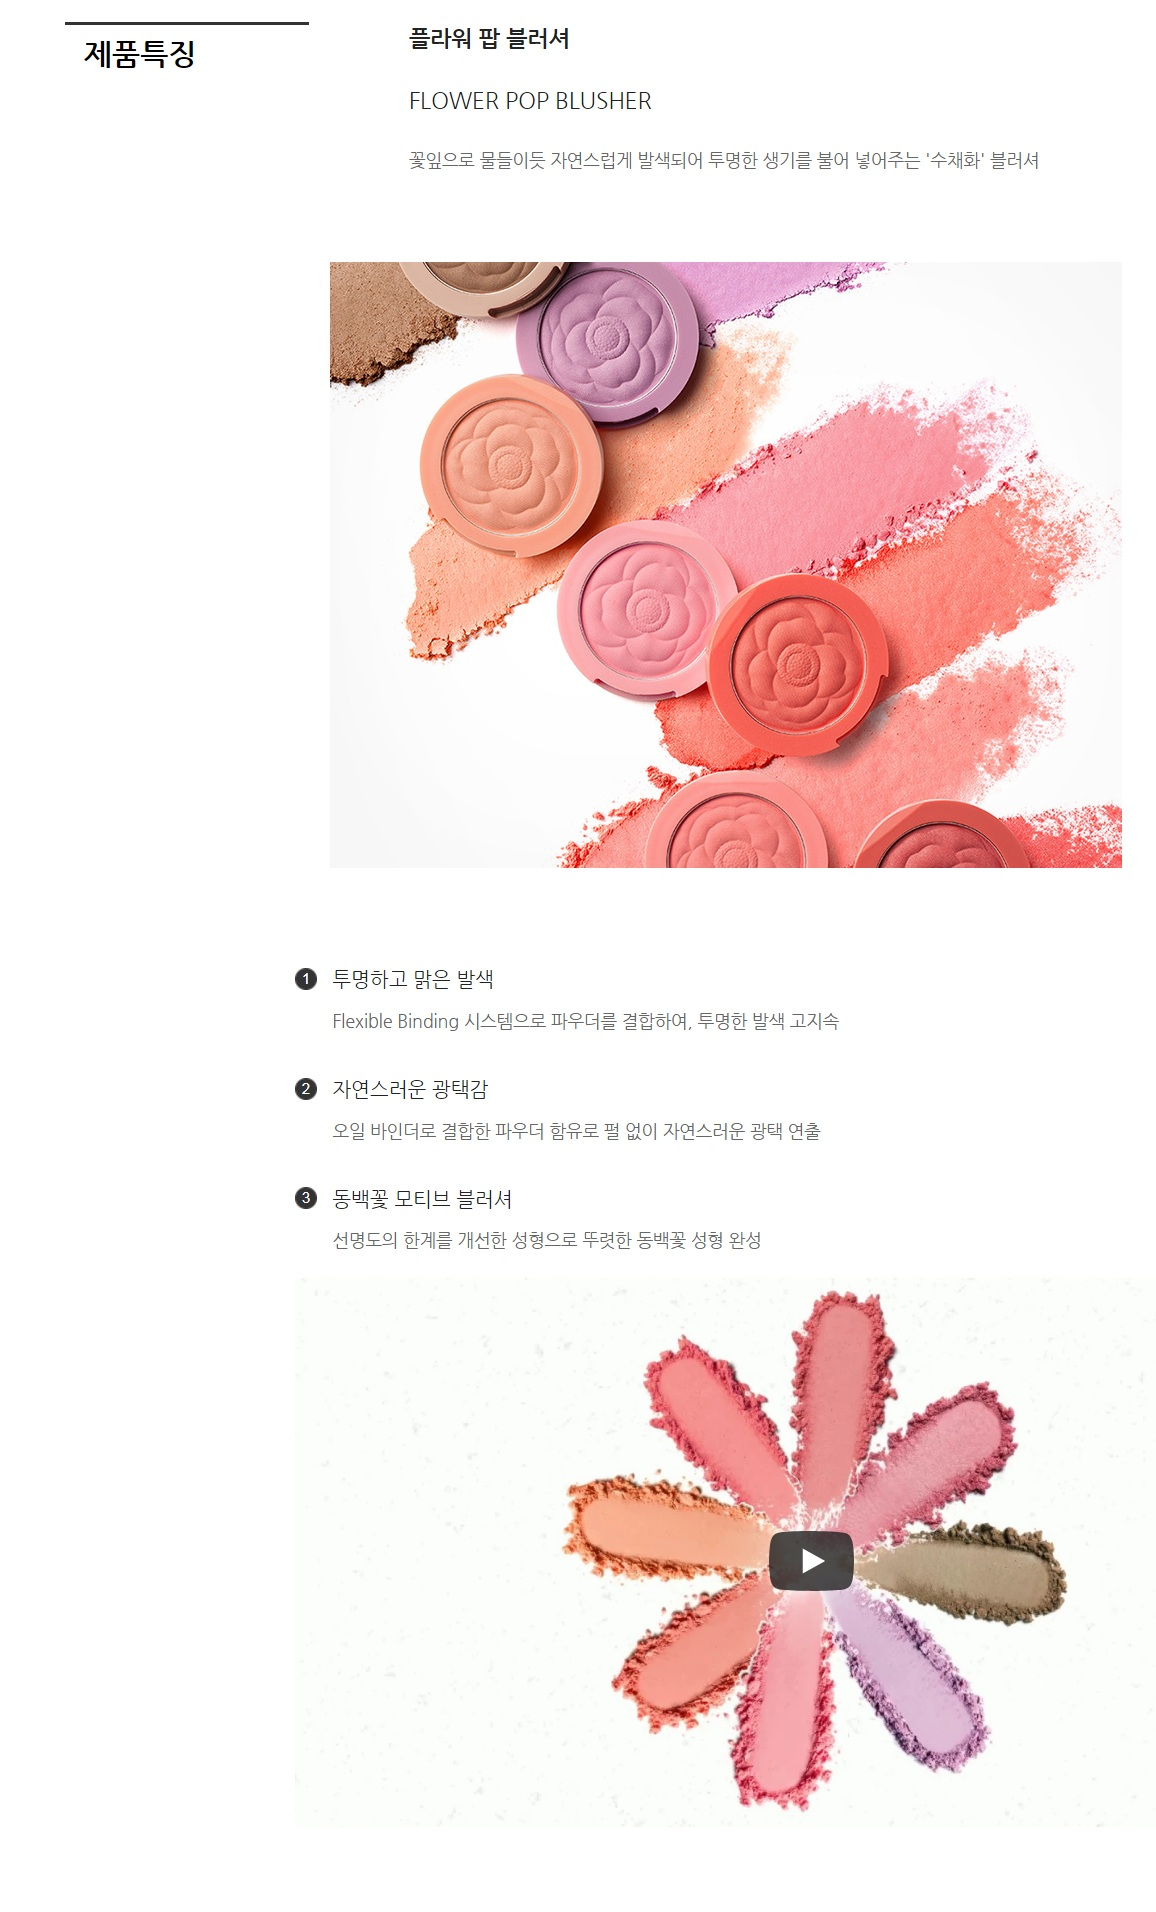 Mamonde Flower Pop Blusher korean cosmetic makeup product online shop malaysia mexico colombia1